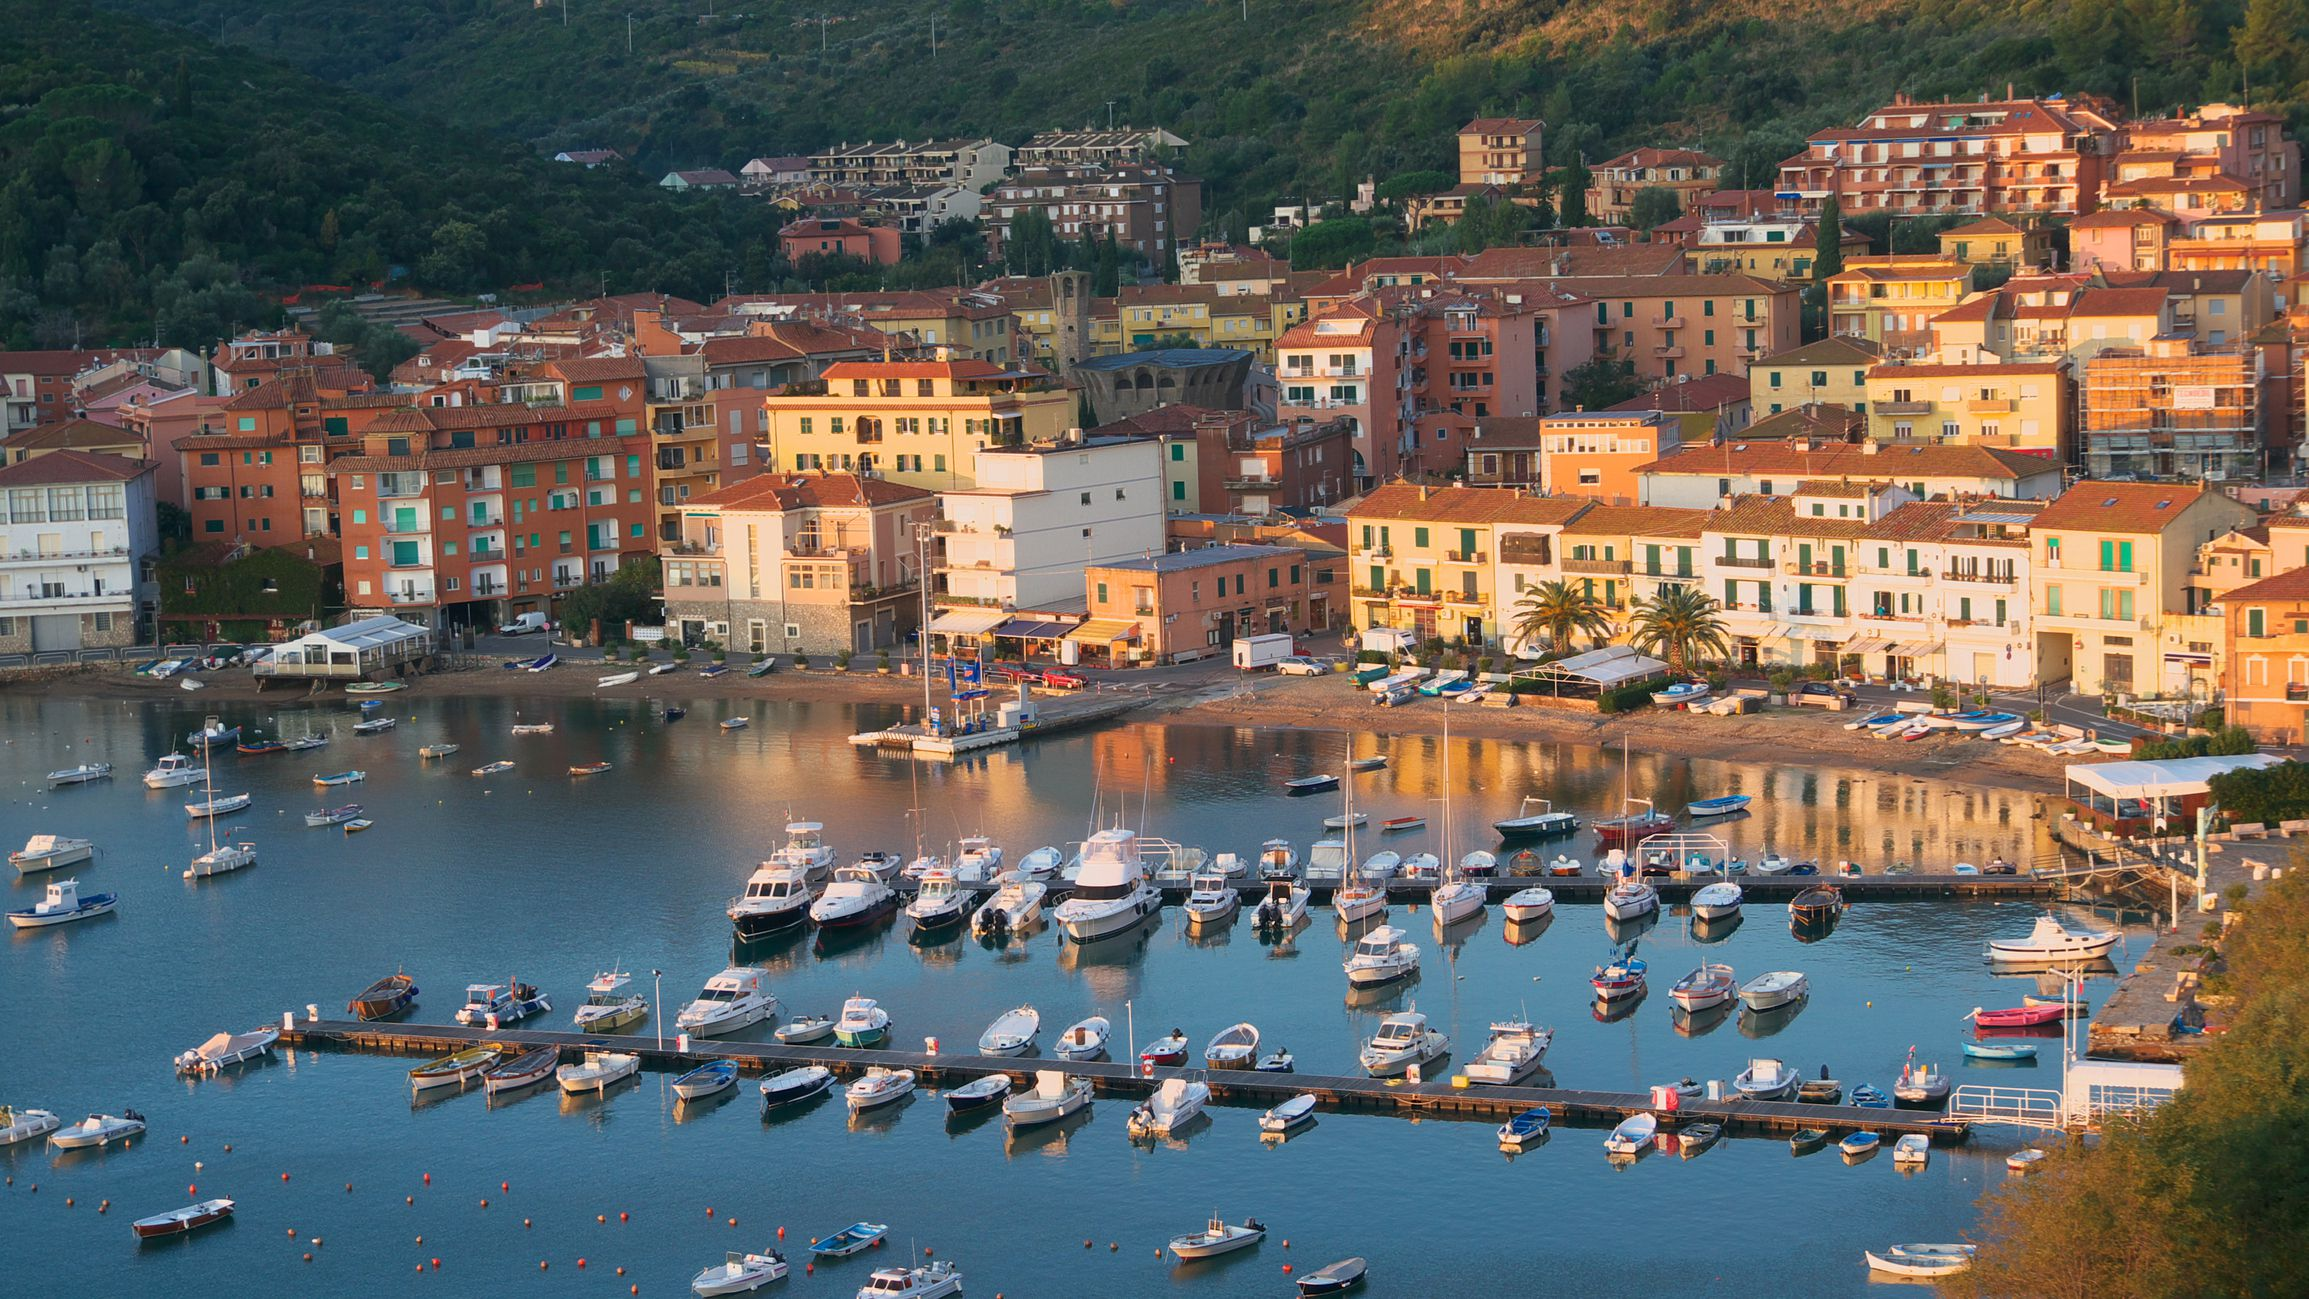 B Auto Parts >> Travel Guide for Monte Argentario, Tuscany Coast